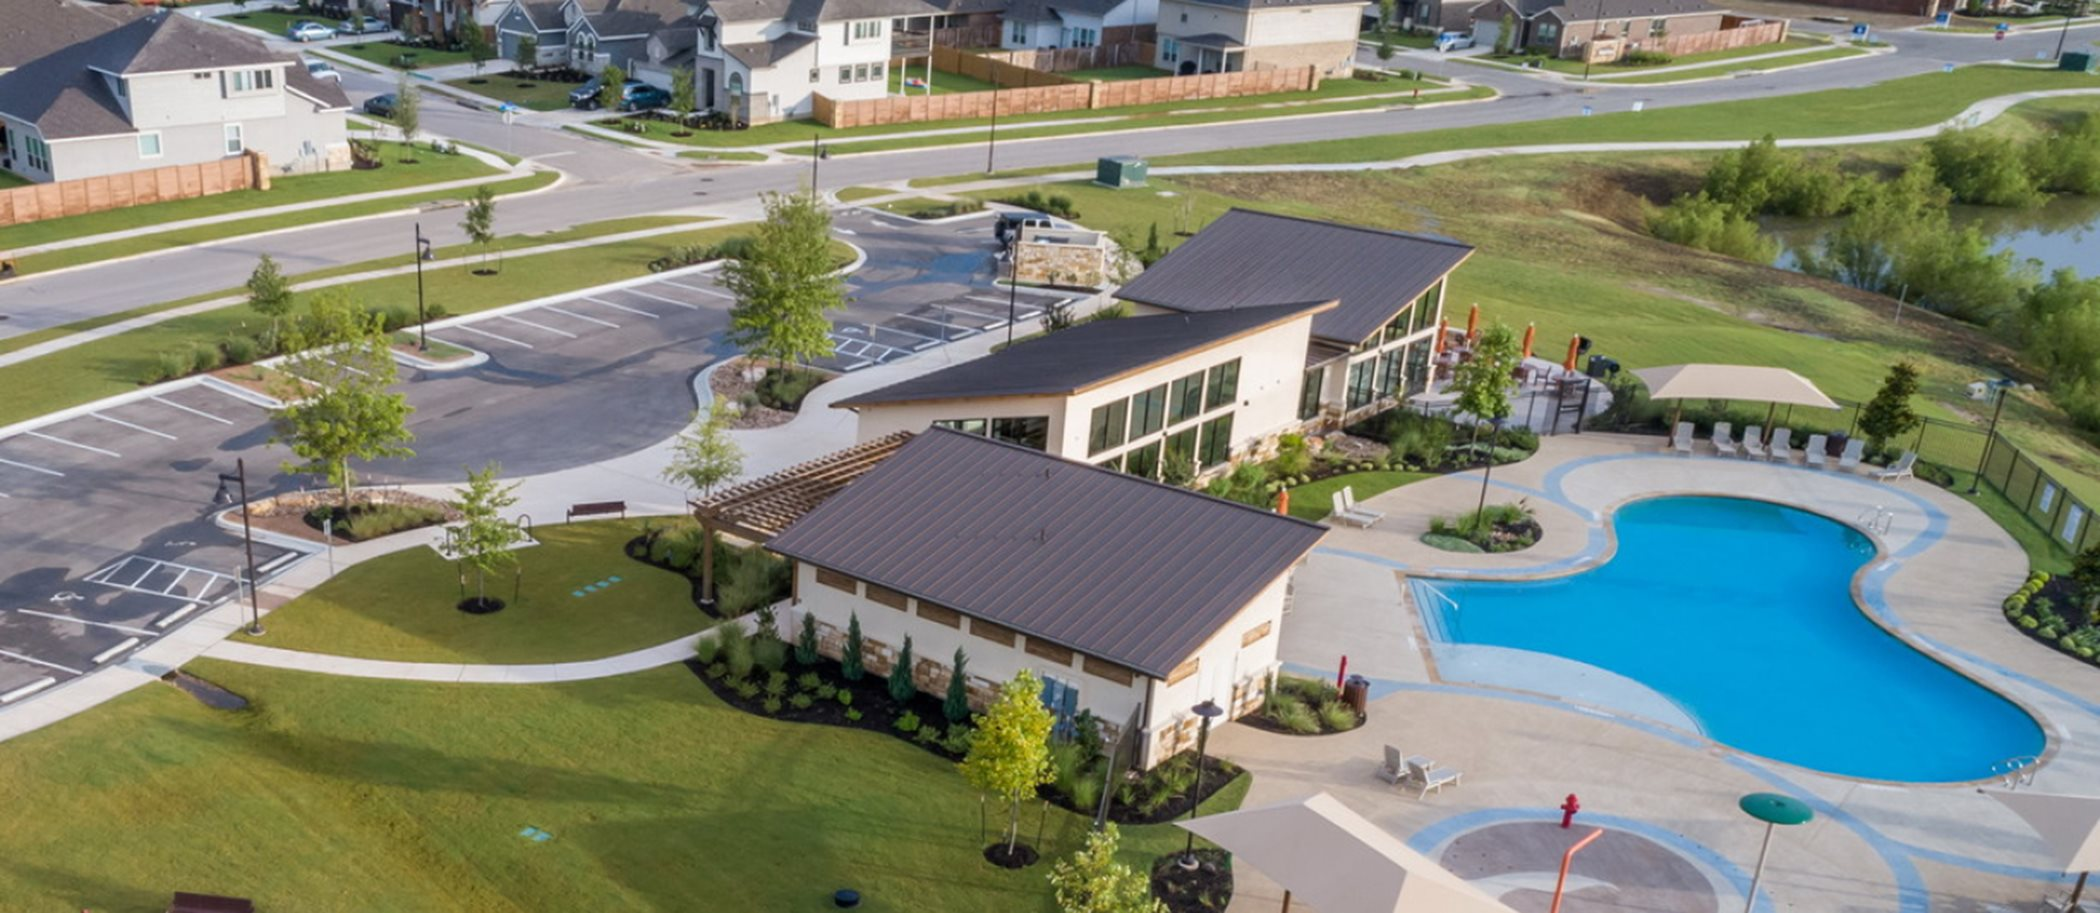 Aerial view of Saddlecreek Swimming Pool and Clubhouse